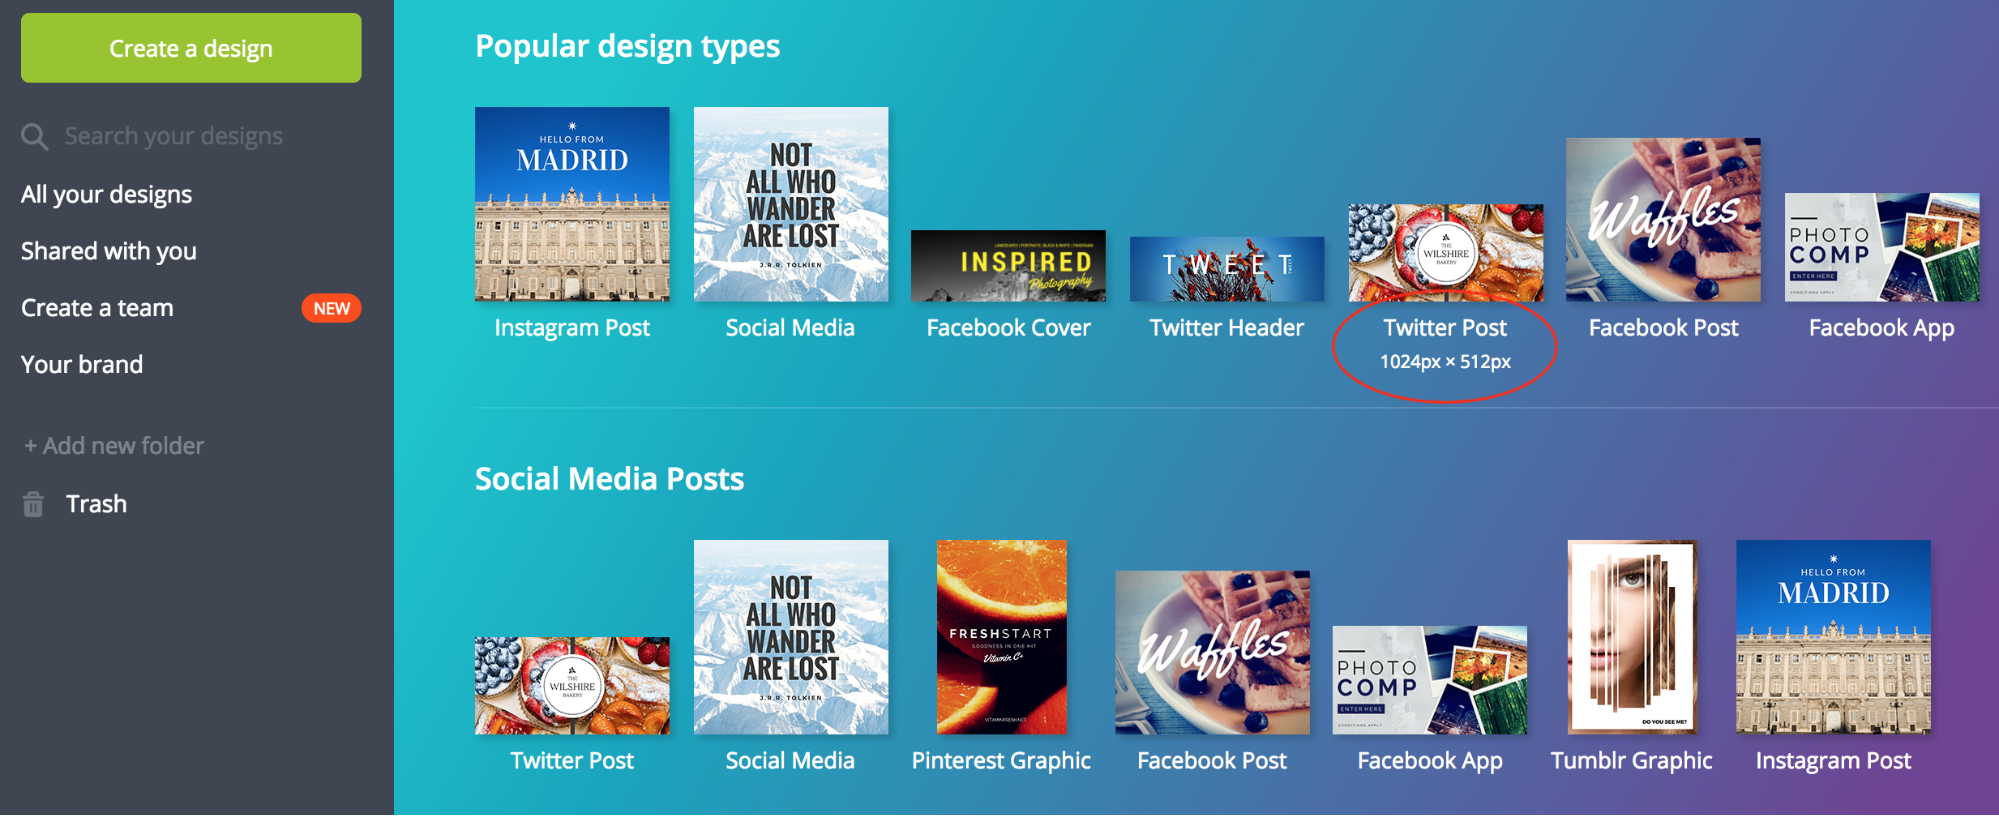 content marketing tools 2017 - canva